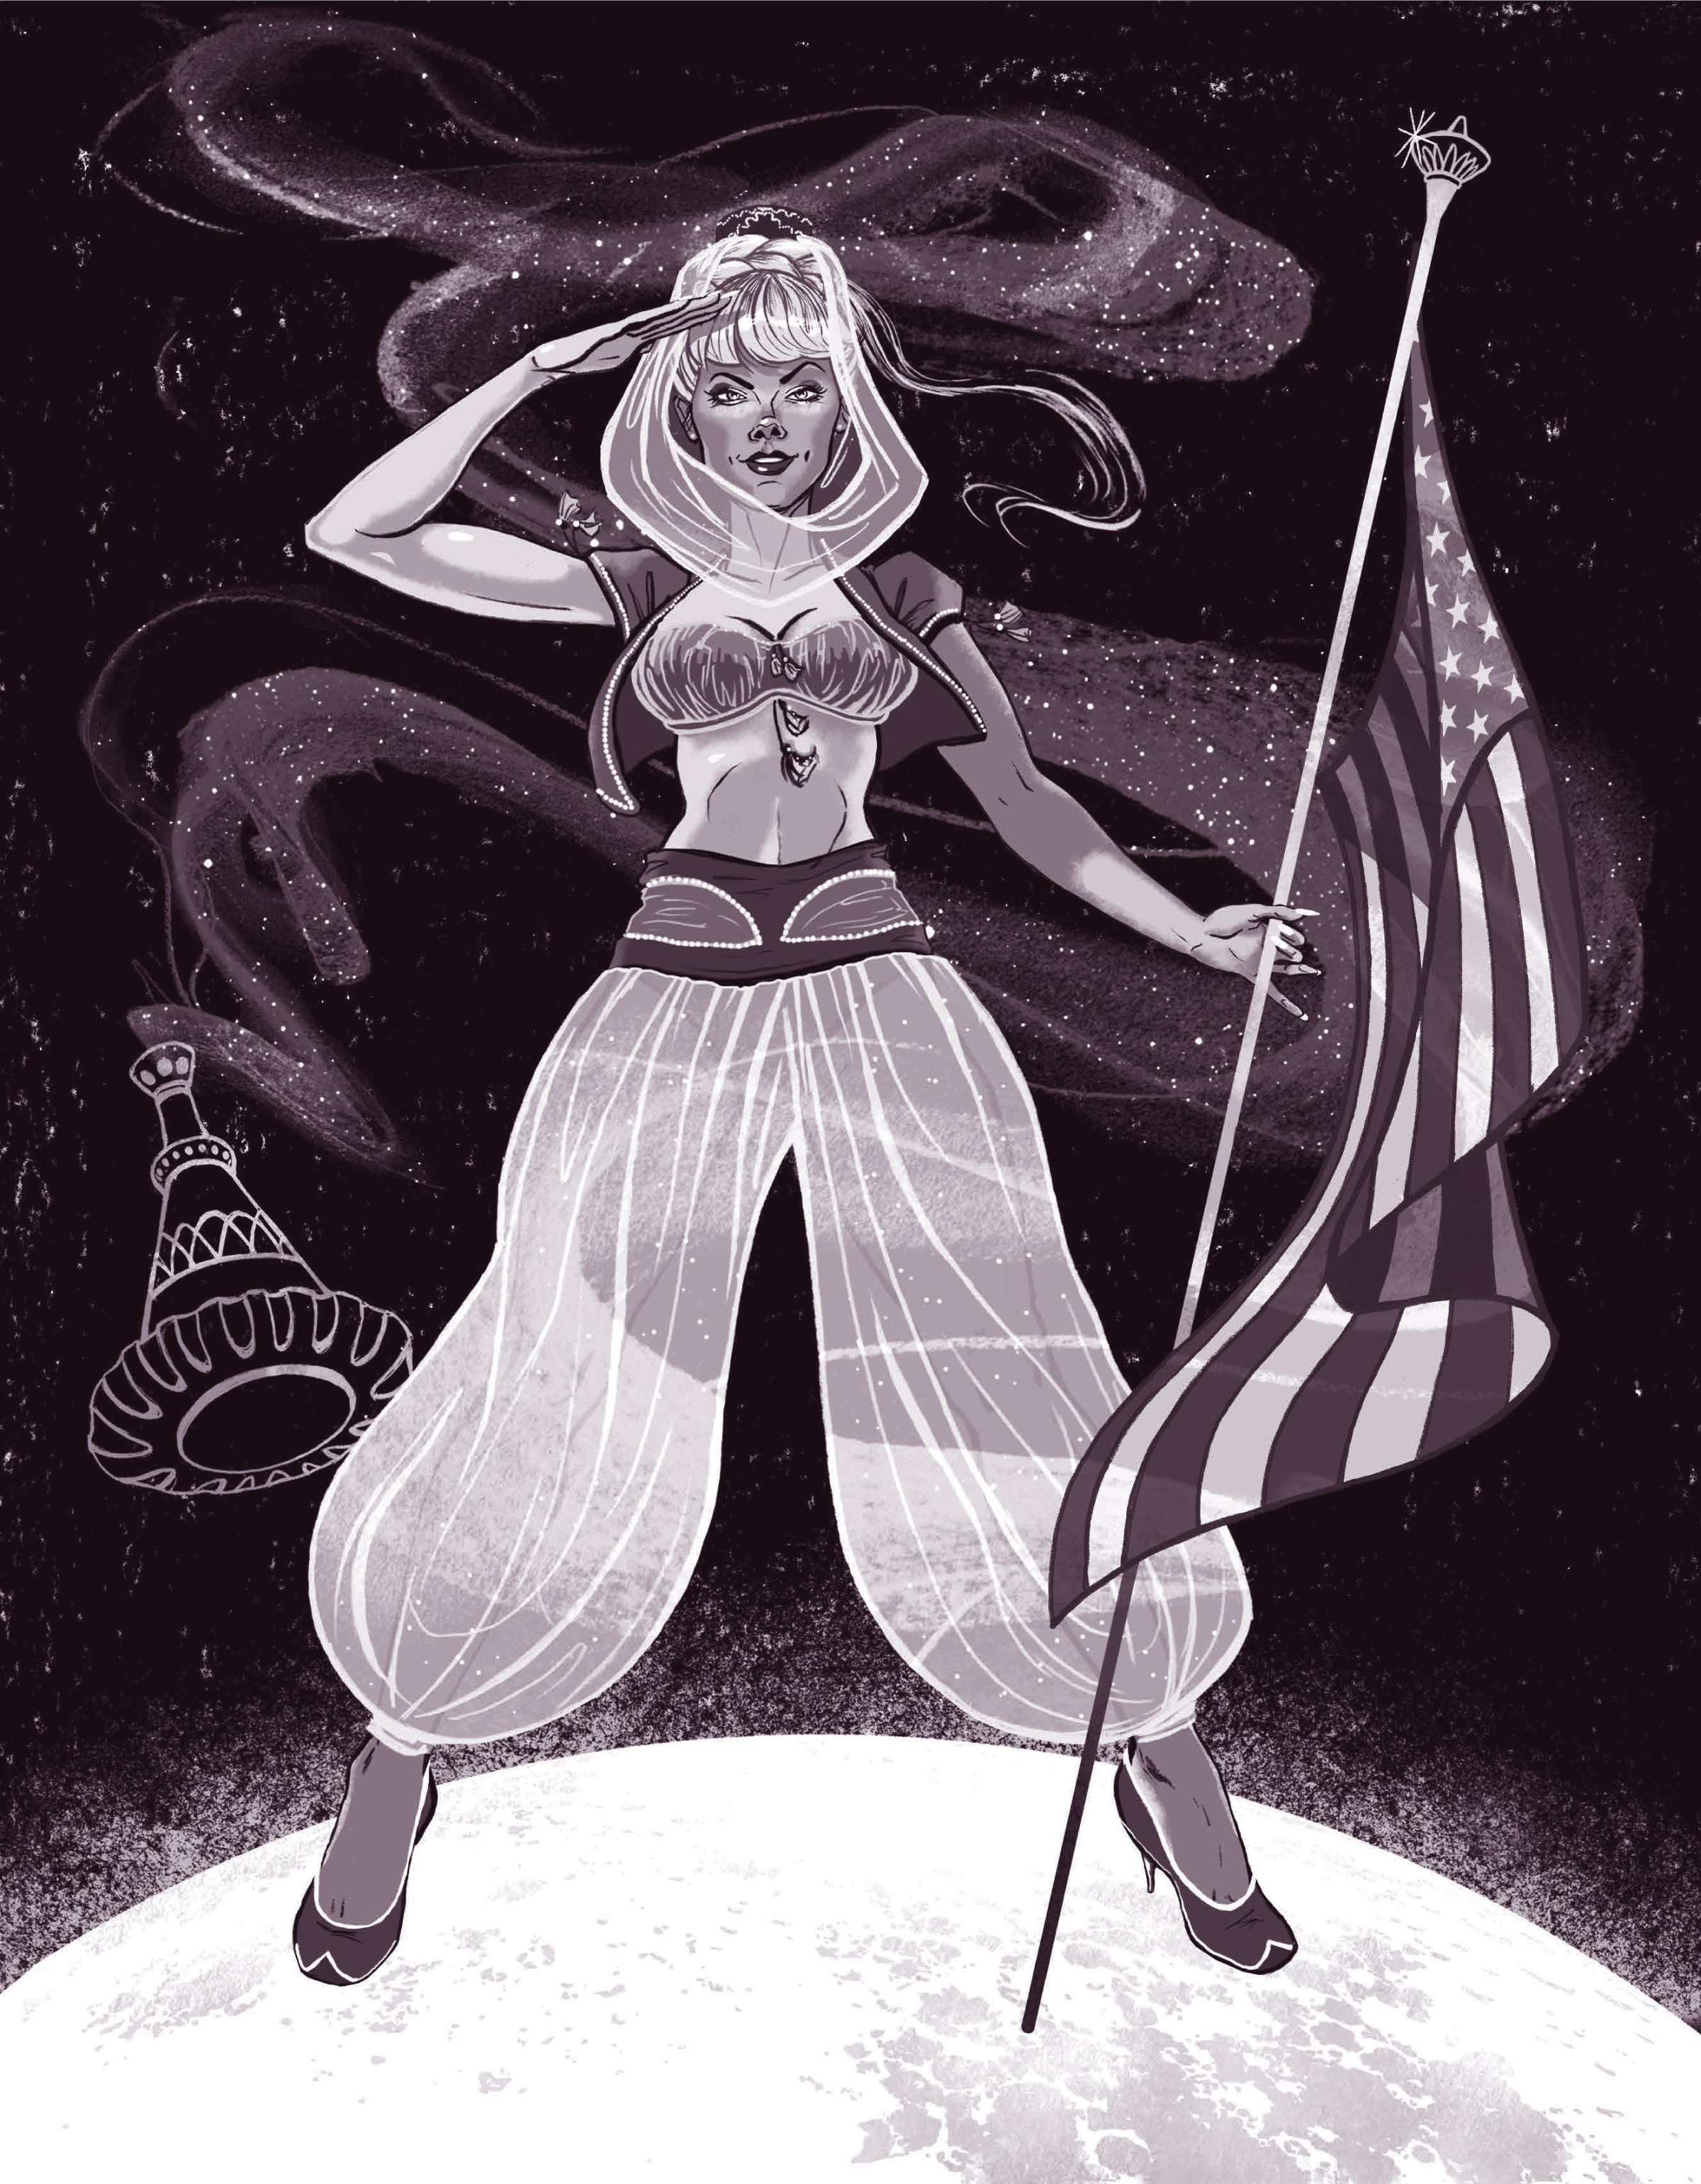 an illustration of Jeannie, a character dressed as a belly dancer and holding a flag in her